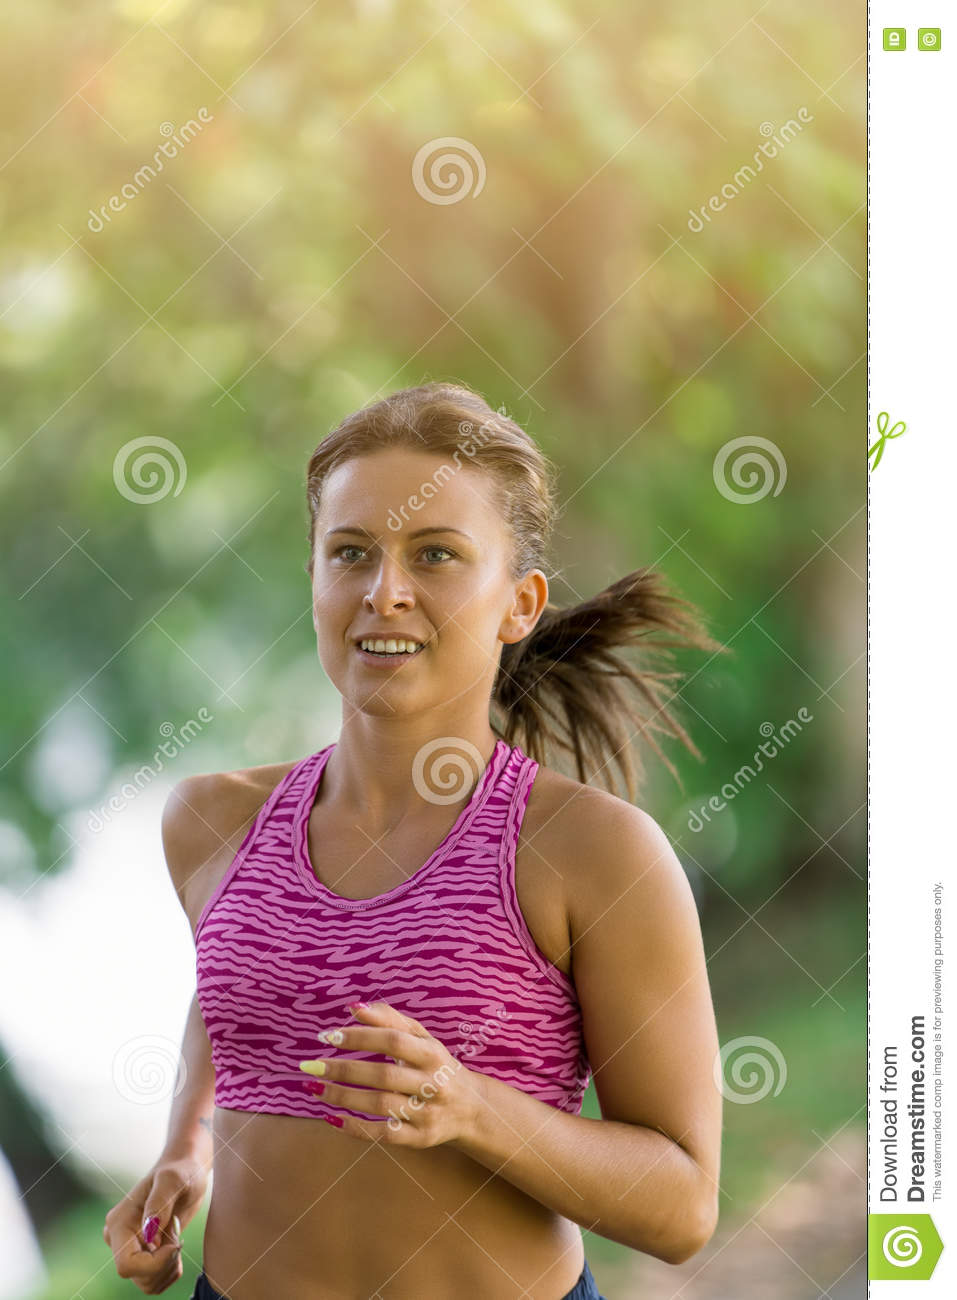 Runner athlete running at park. woman fitness jogging workout wellness concept.